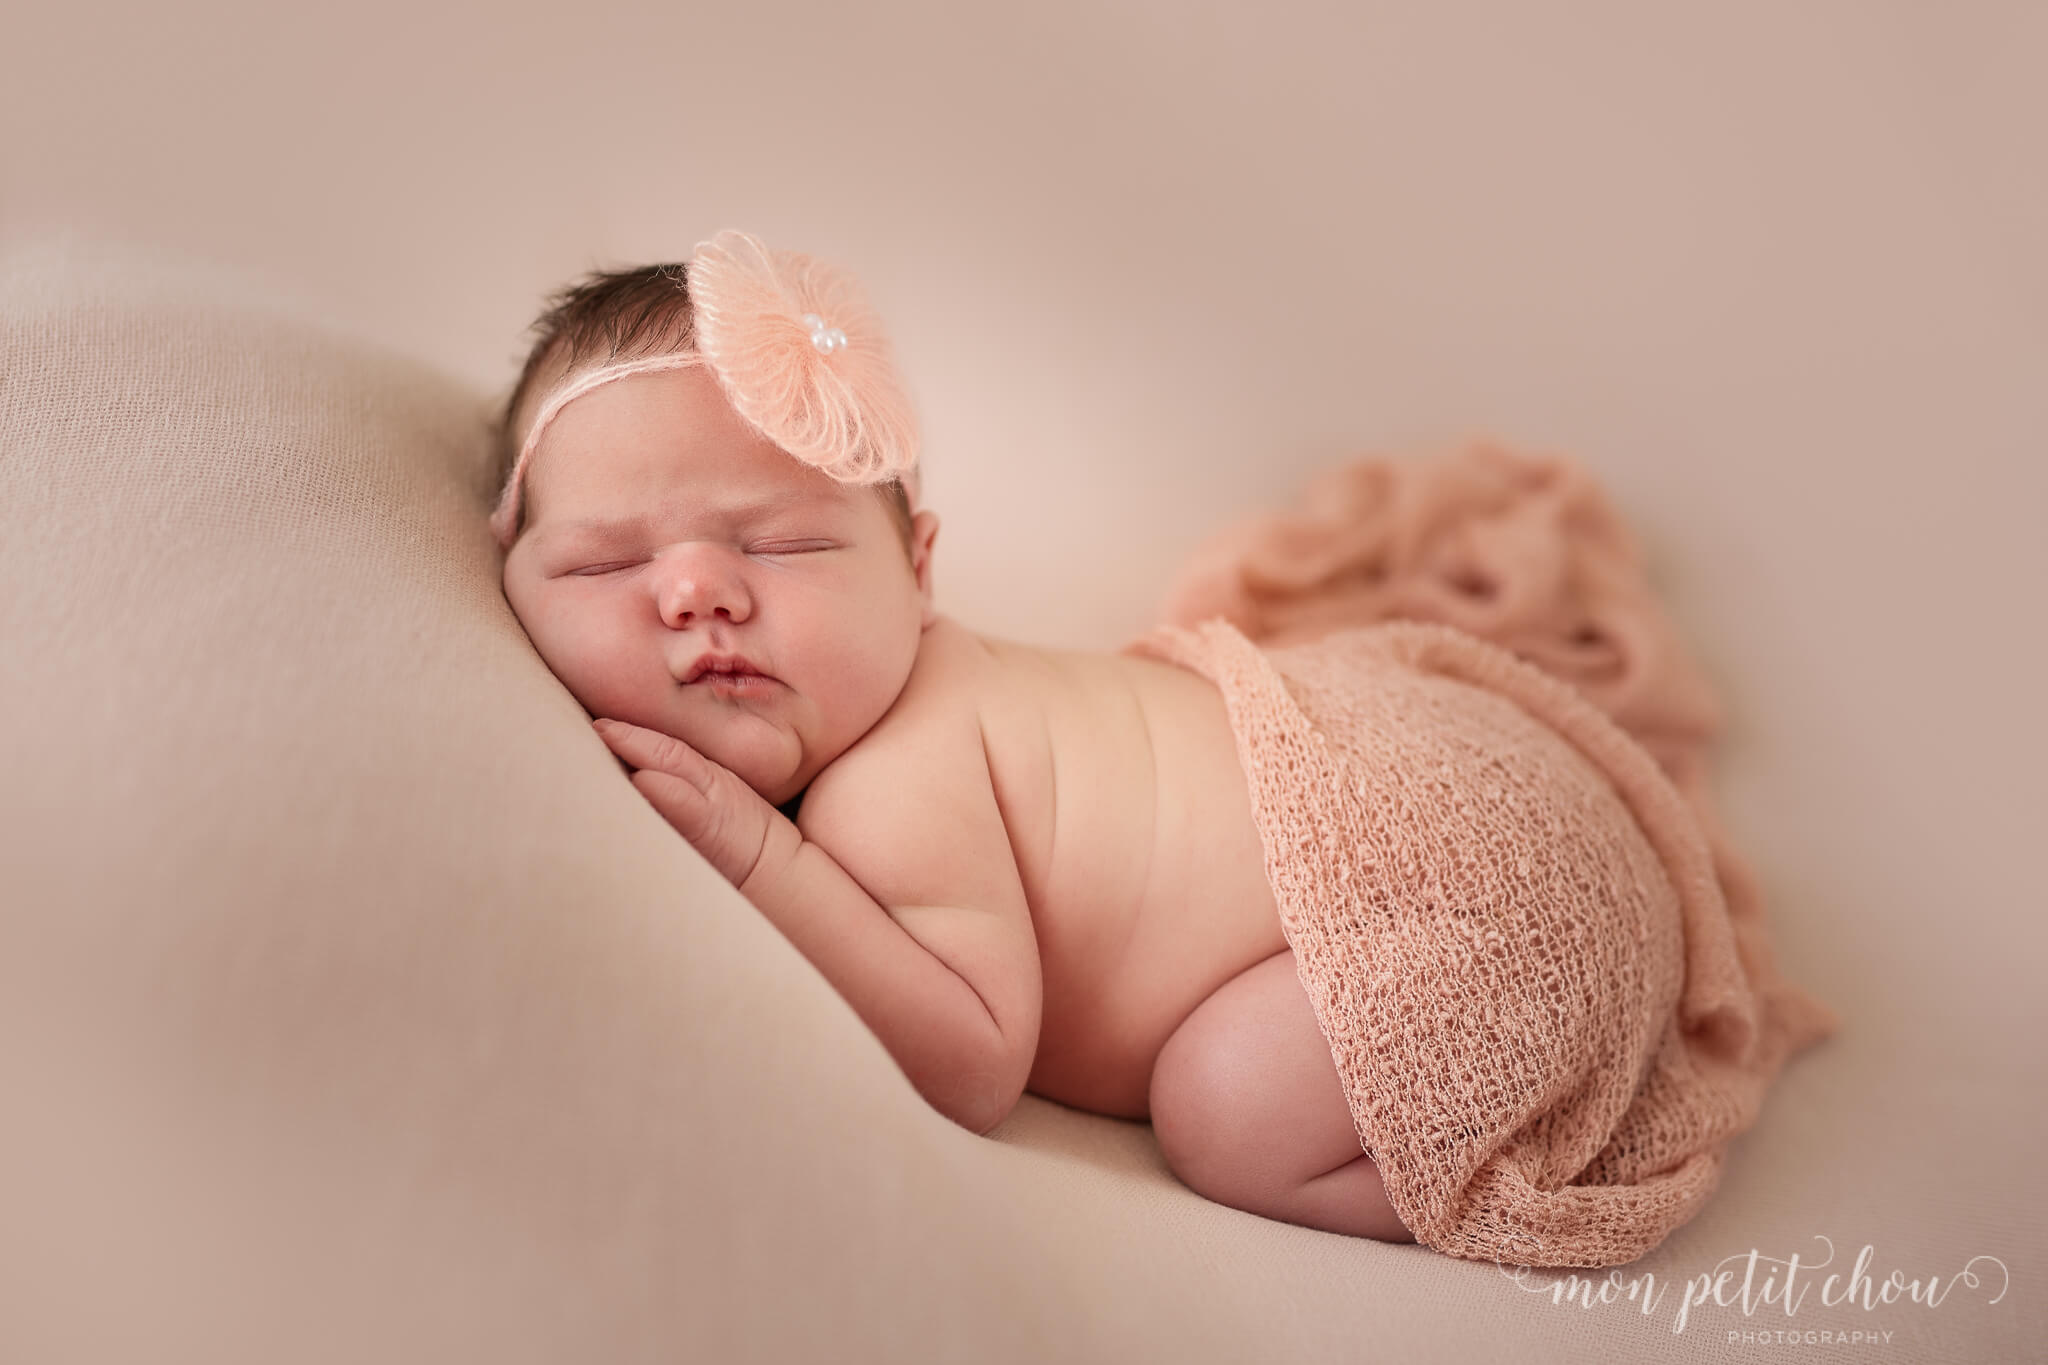 Cute baby girl covered in wool blanket sleeping